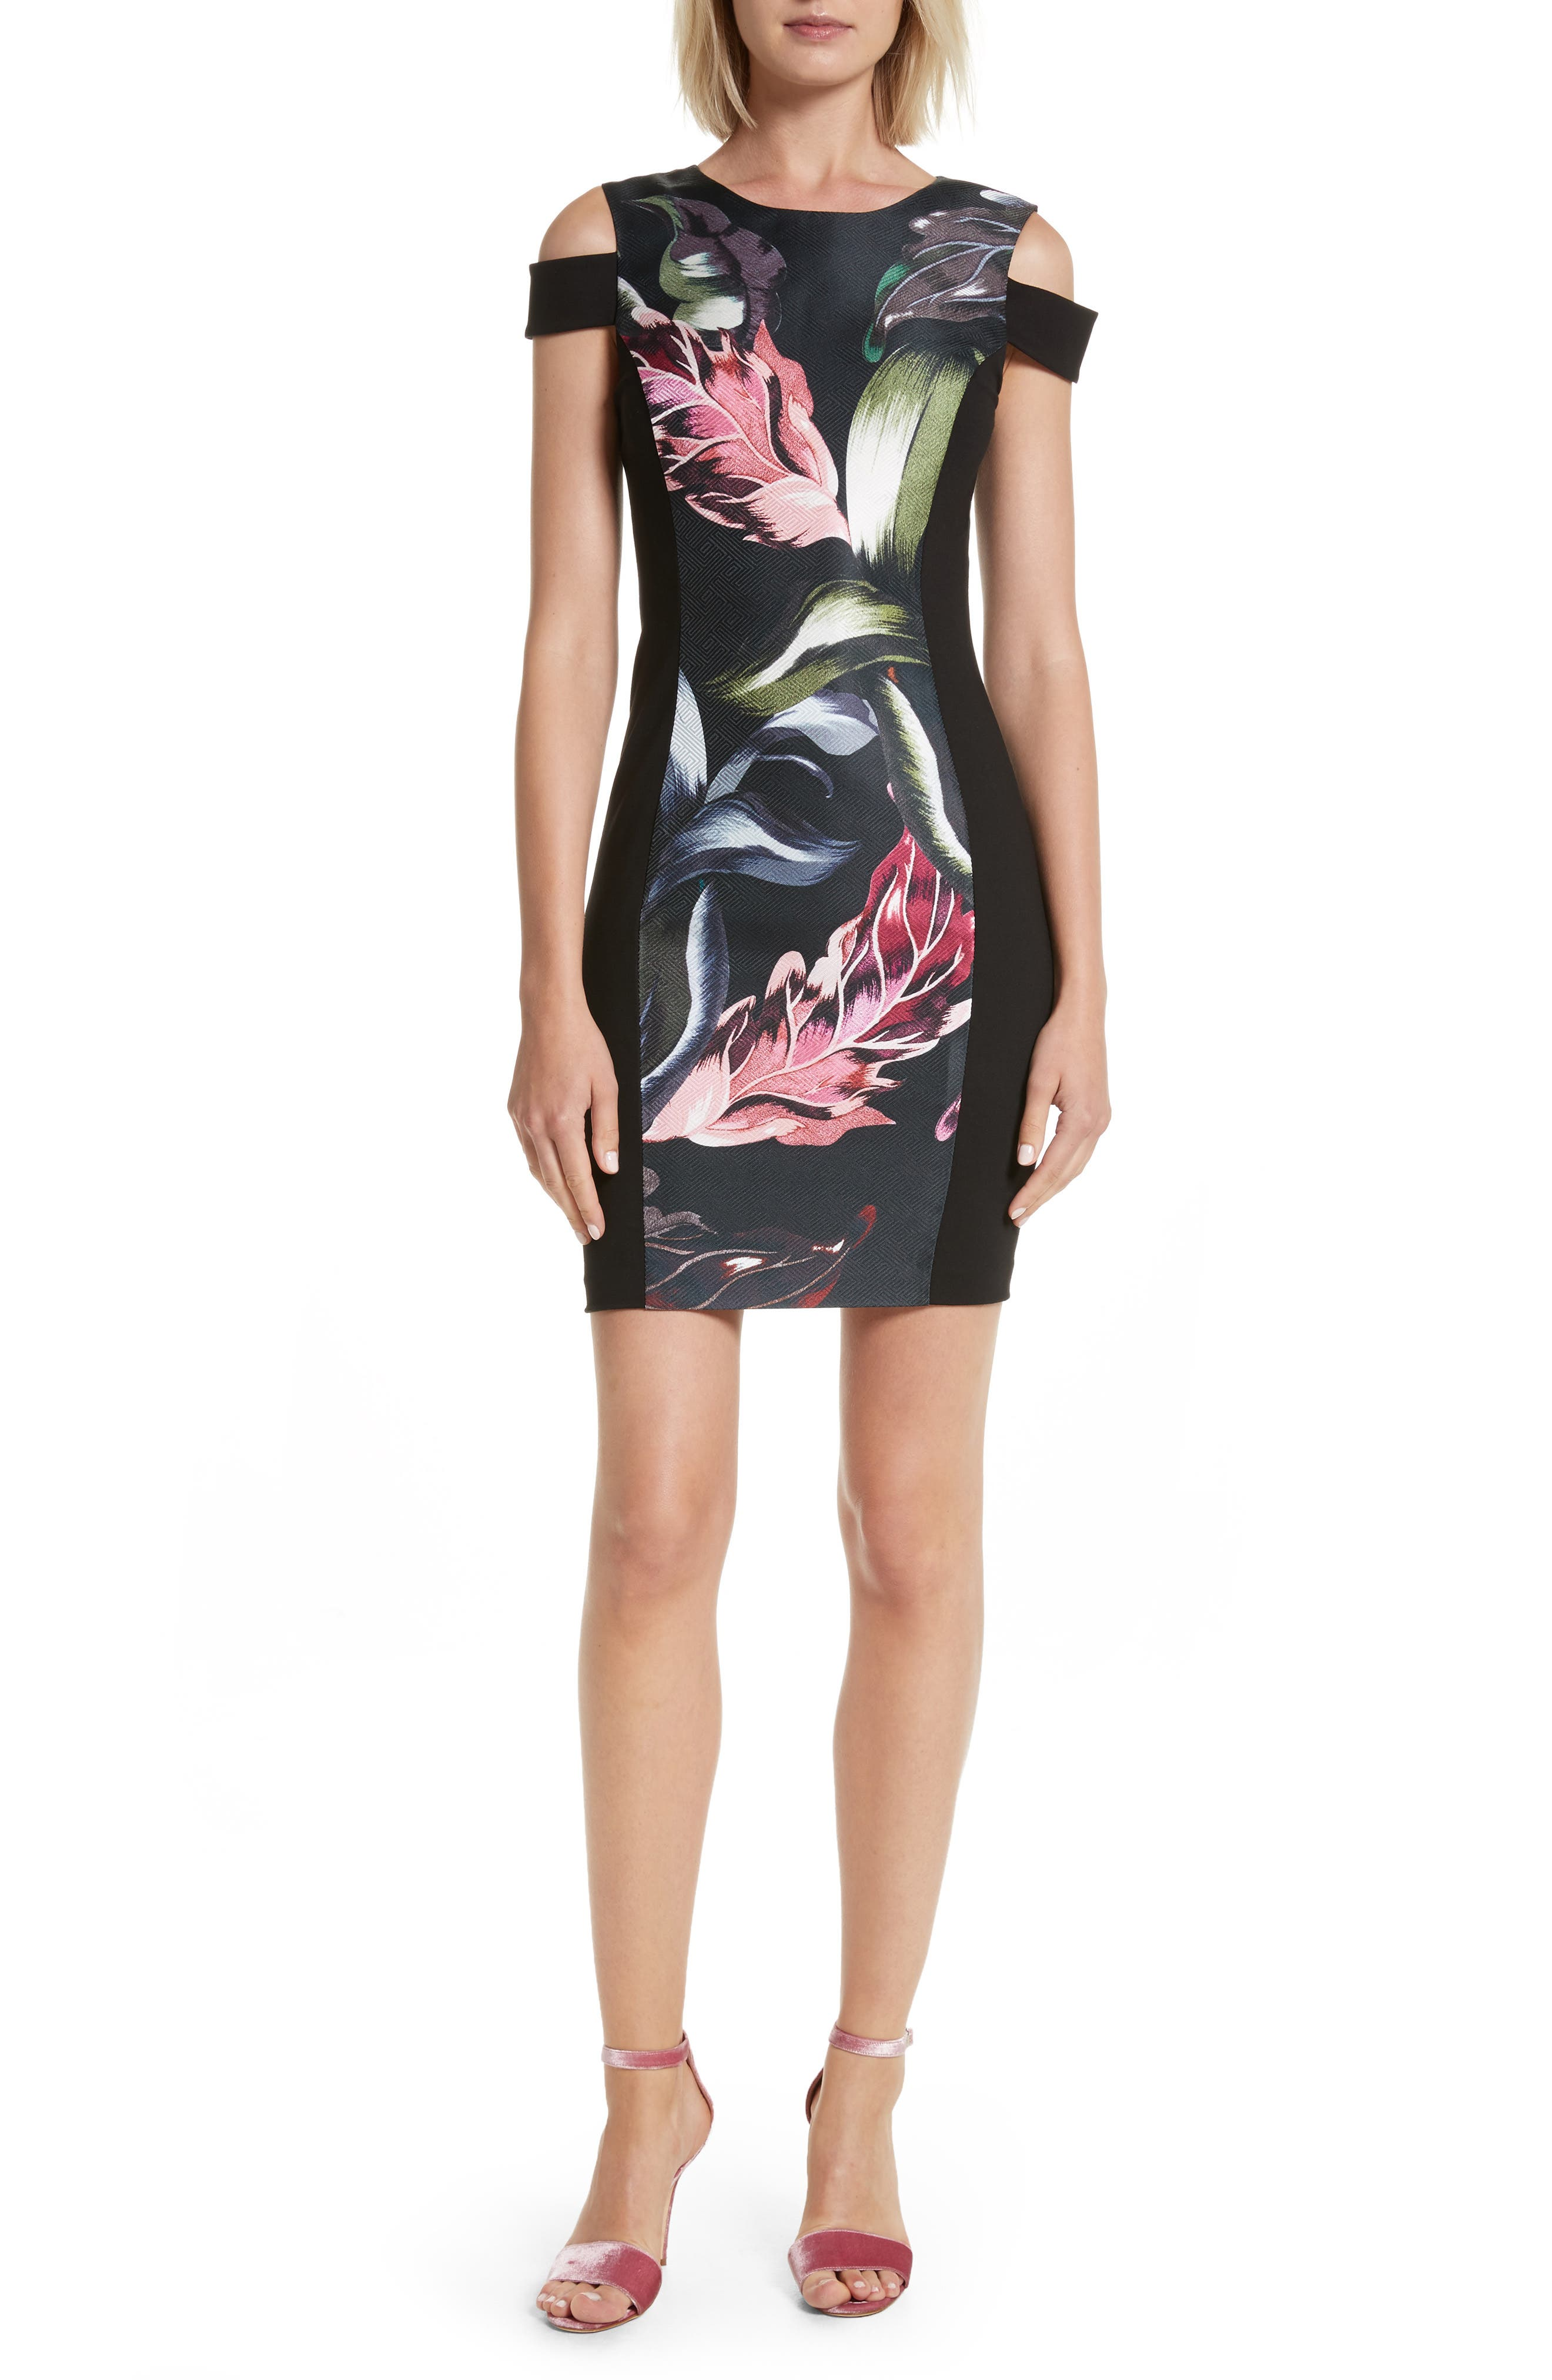 Leeash Eden Body Con Dress,                             Main thumbnail 1, color,                             001